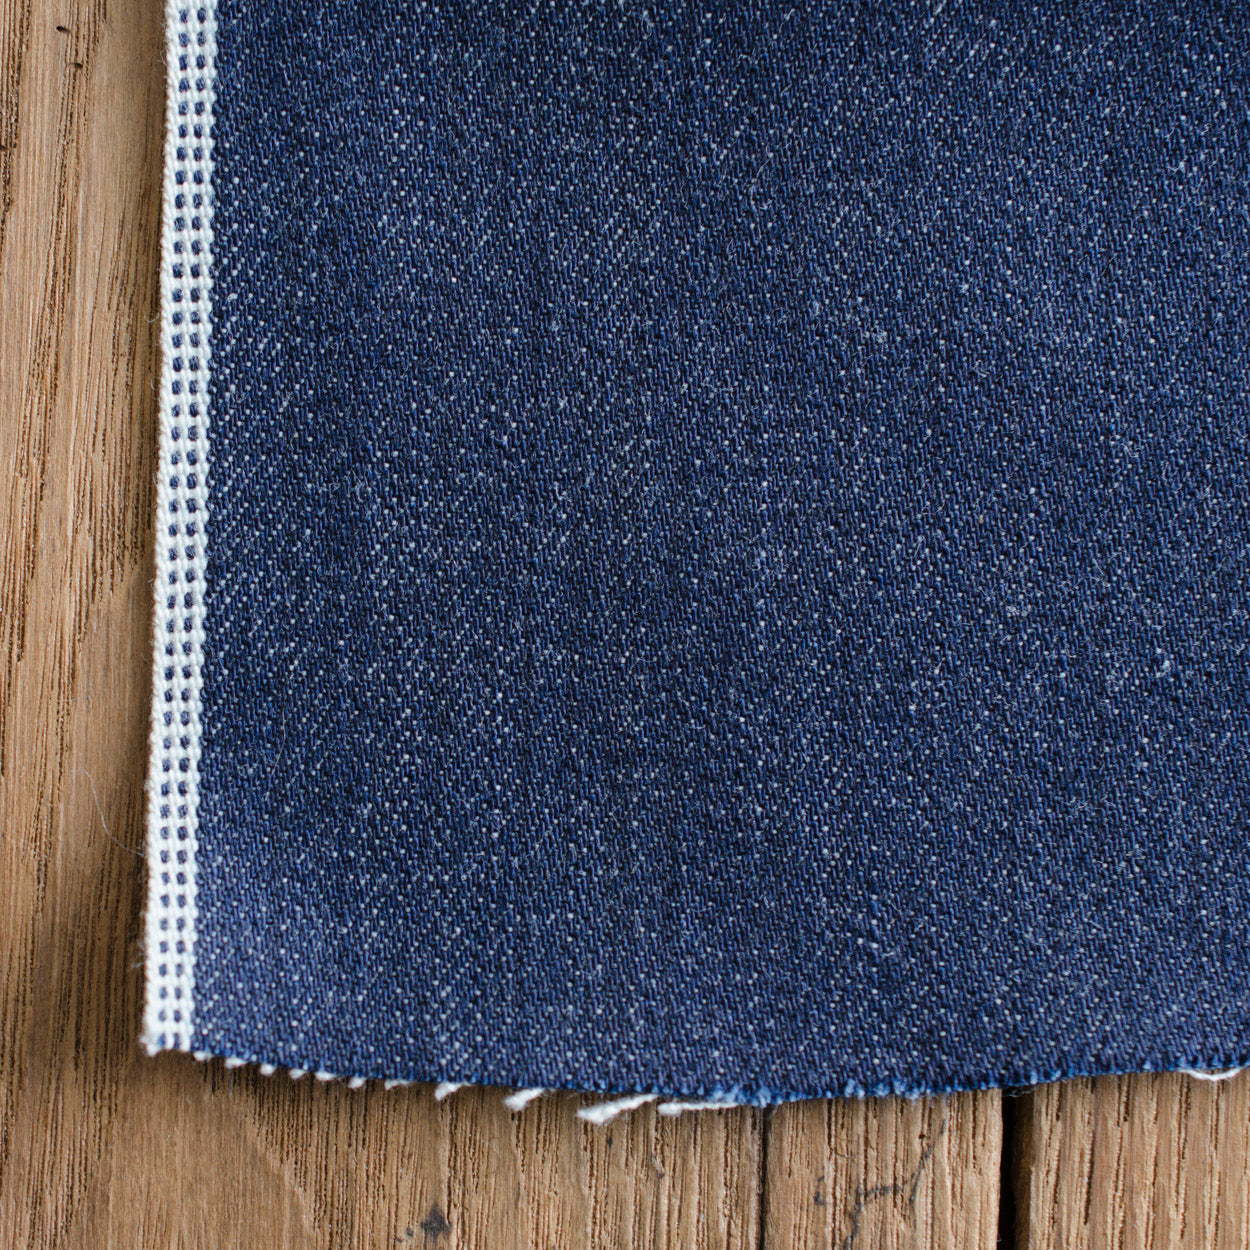 Style W557 : 13.50 oz. Selvage with Double Navy ID